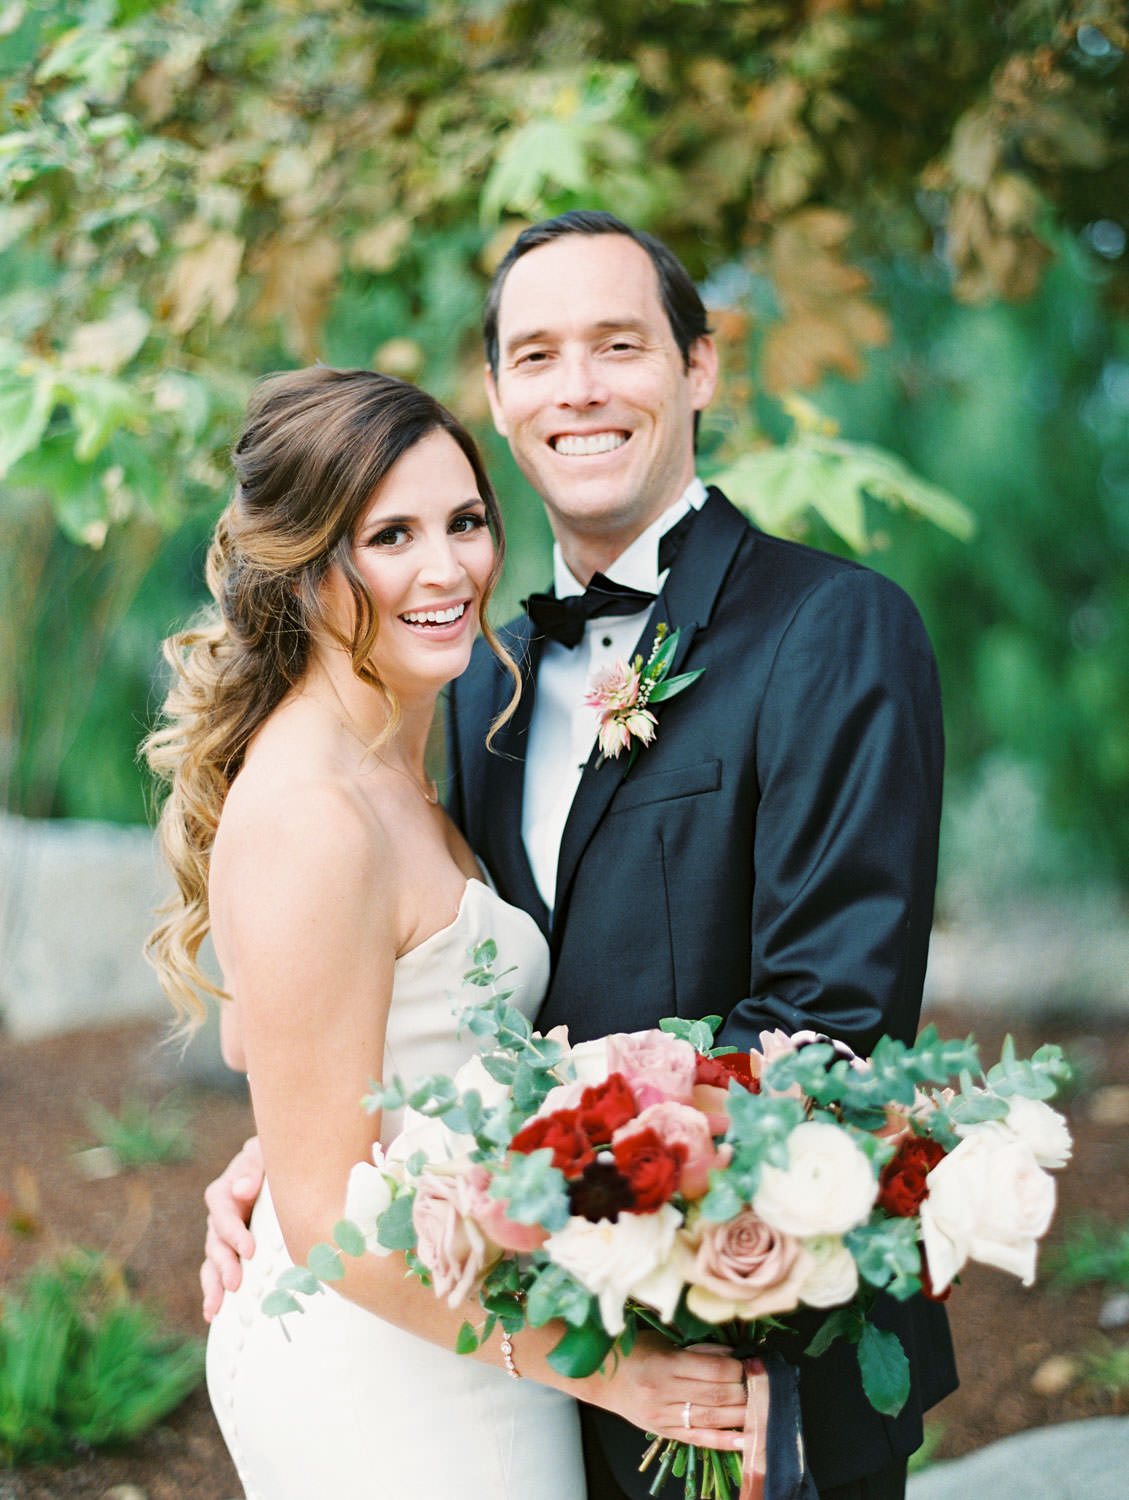 Bride in Anne Barge sweetheart gown with red ivory and mauve bouquet and groom in black tux smiling at camera at Green Acre Campus Pointe Wedding, film photo by Cavin Elizabeth Photography